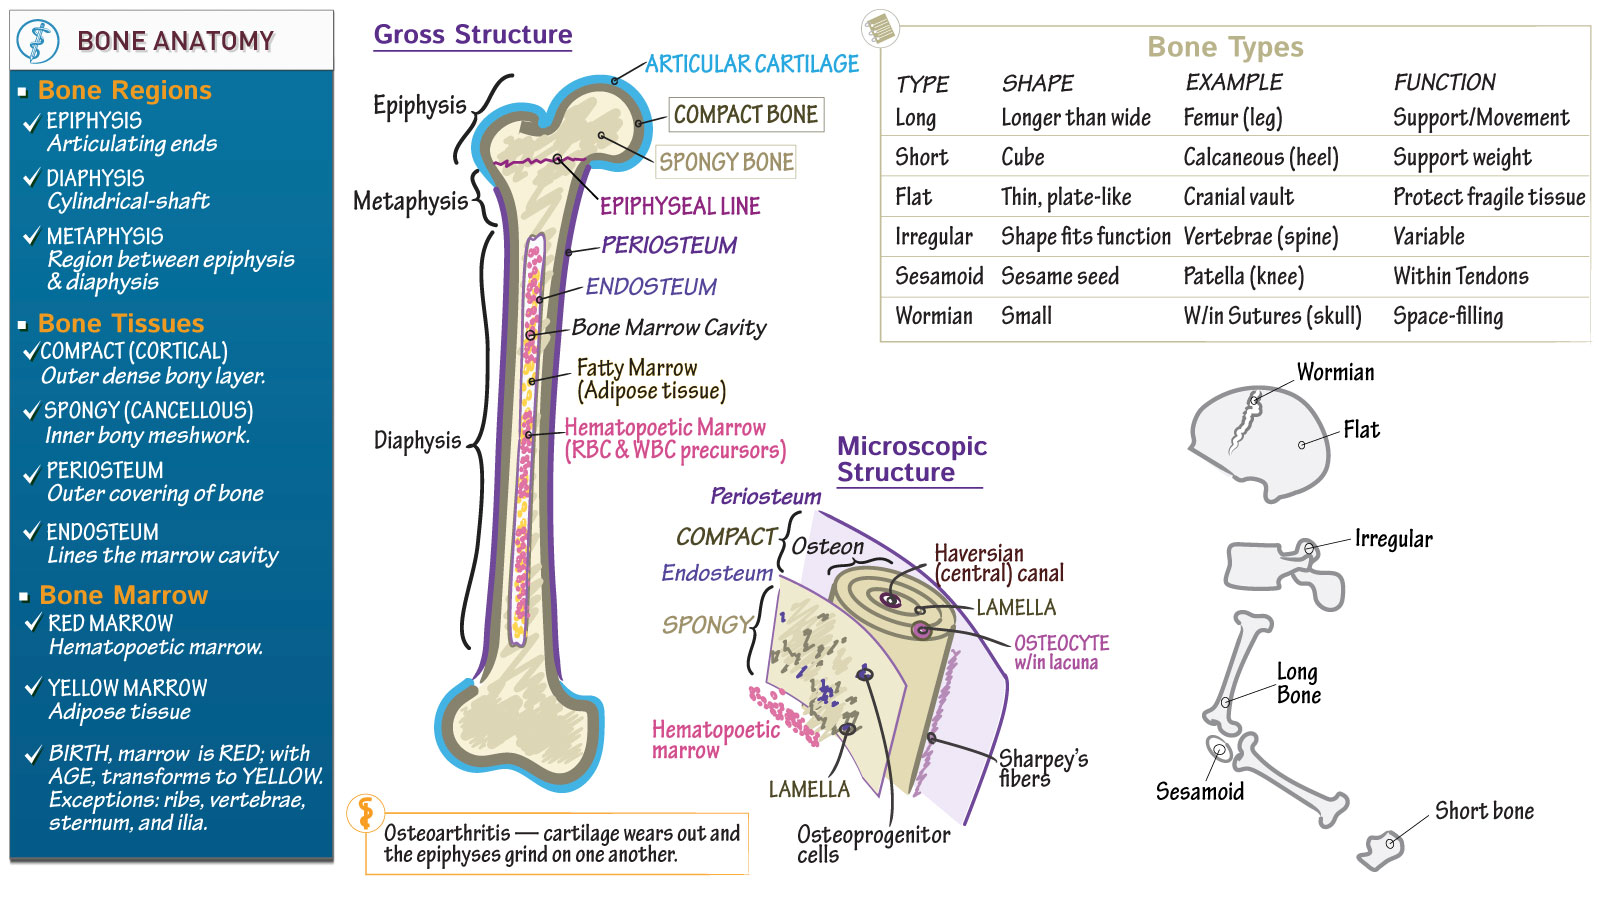 Anatomy & Physiology: Bone Structure & Types | Draw It to Know It